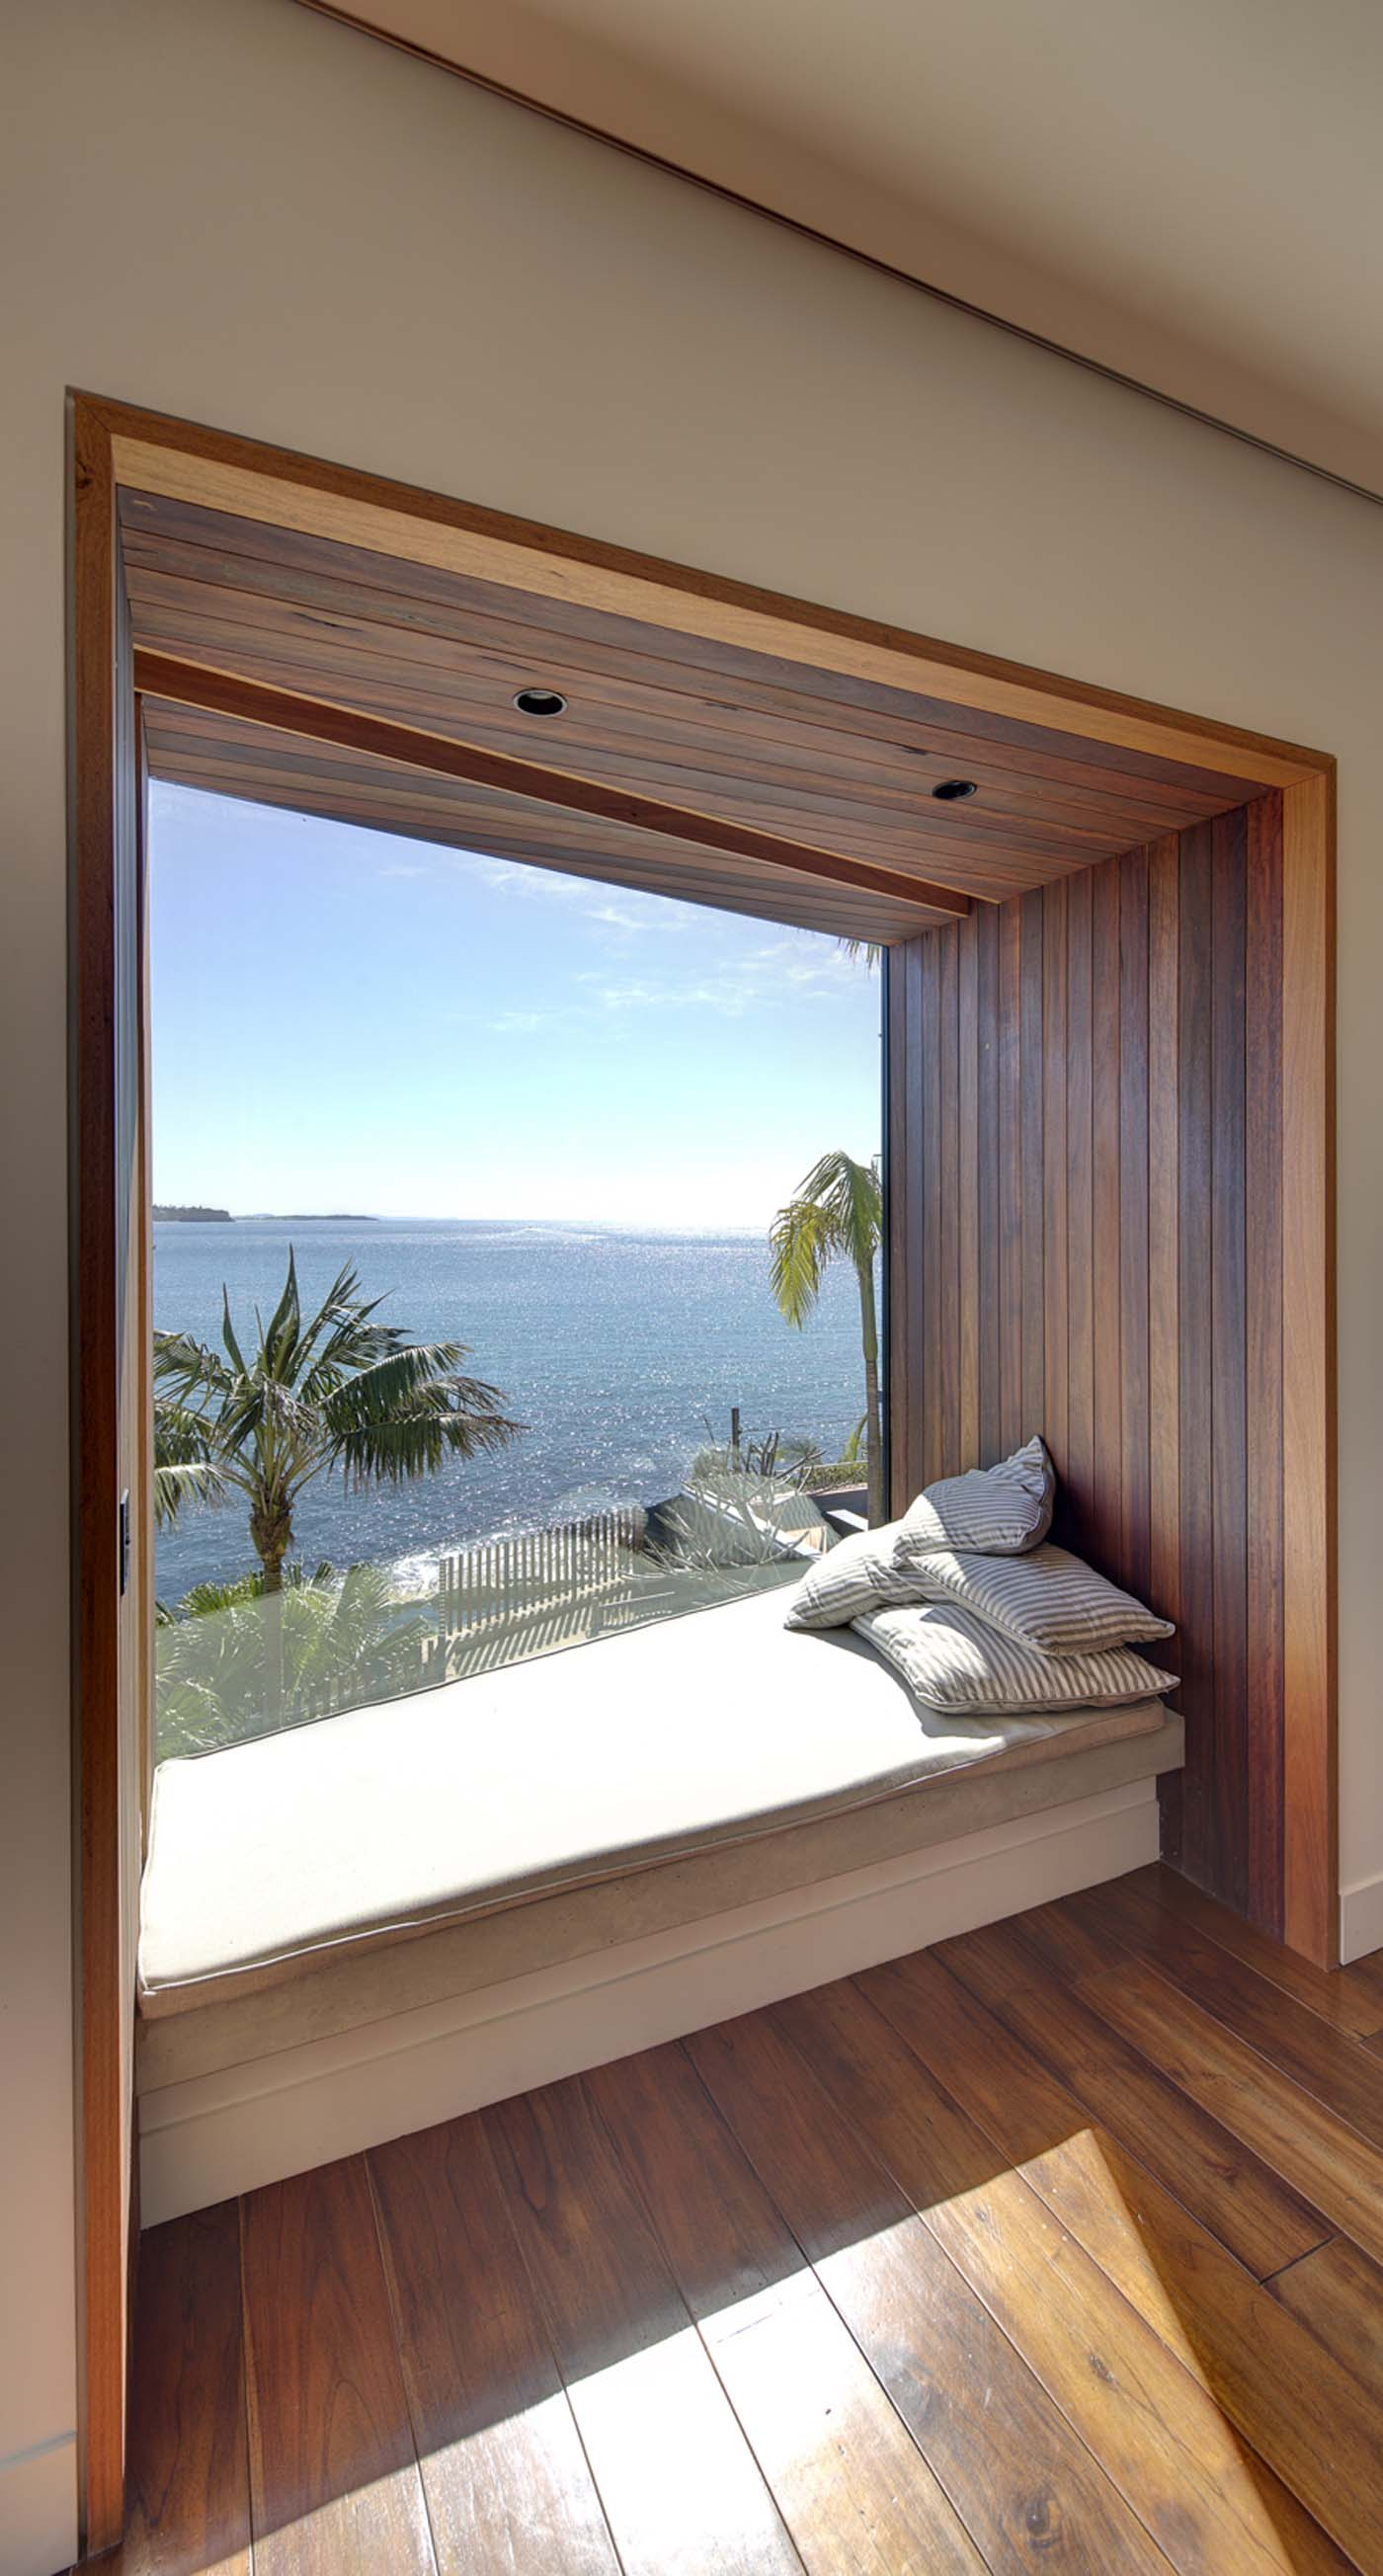 The Bower by Sam Crawford Architect, window seat overlooking Cabbage Tree Bay